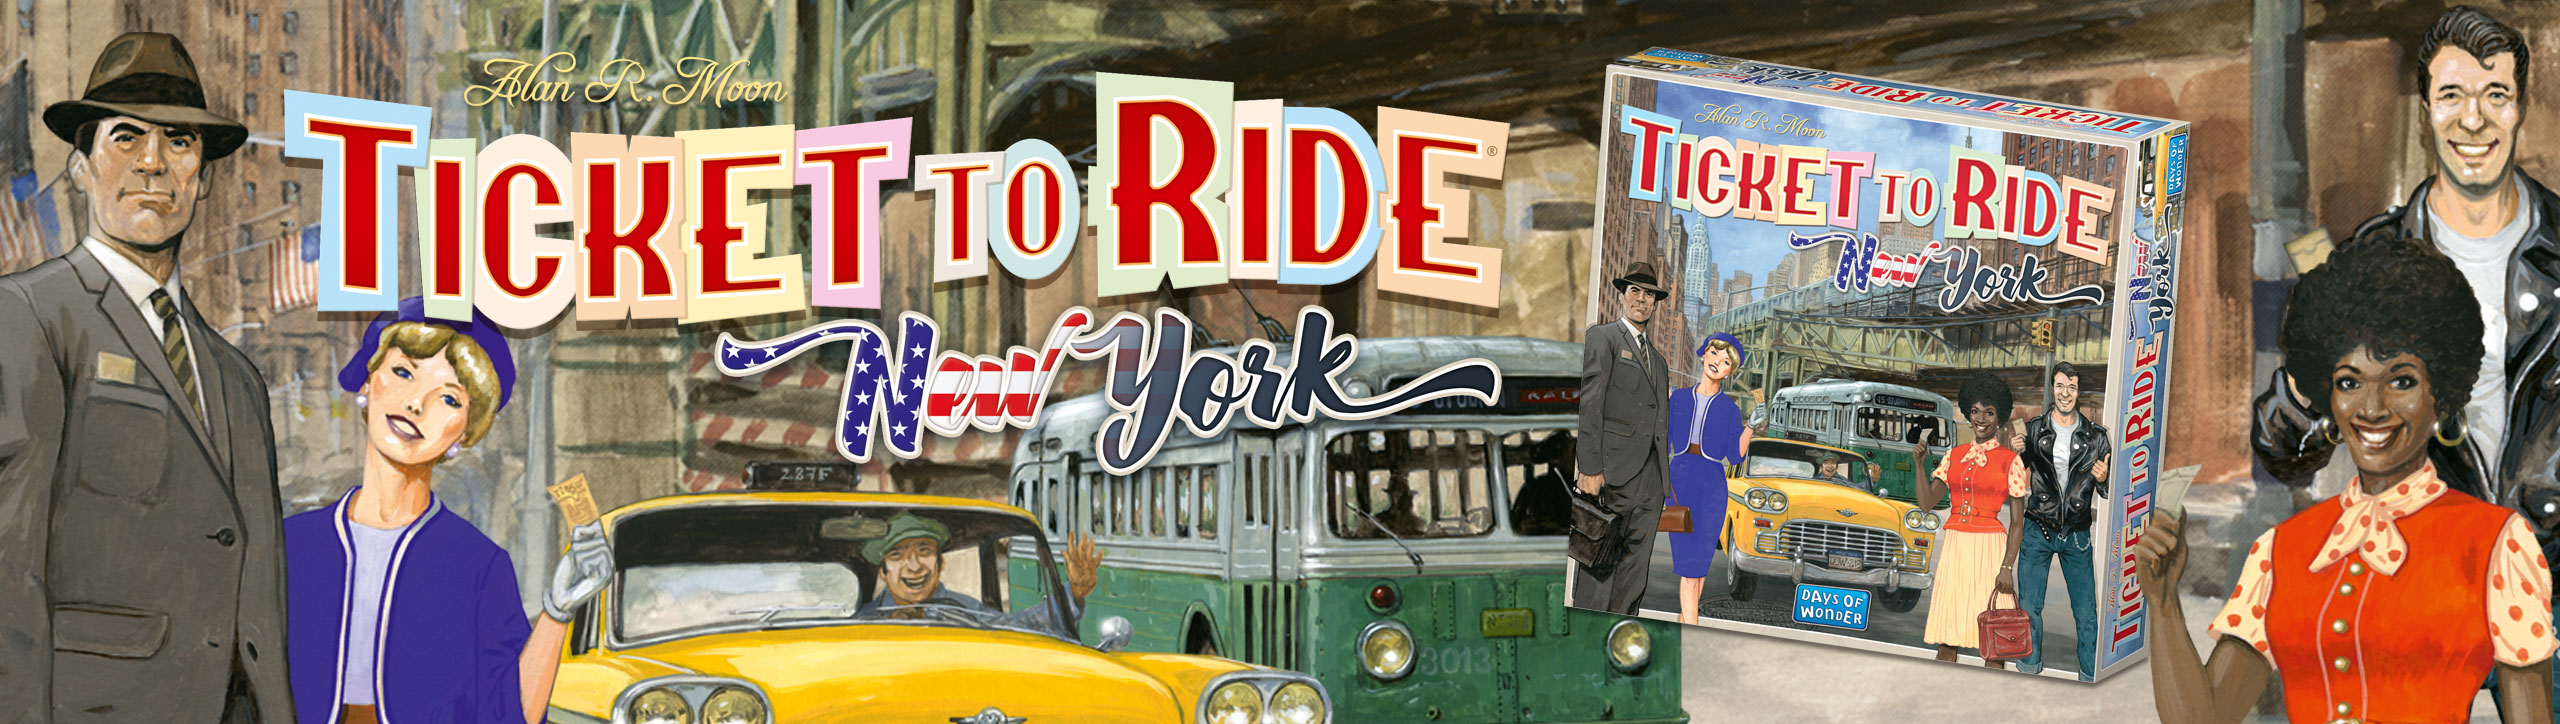 Ticket to Ride NY artwork